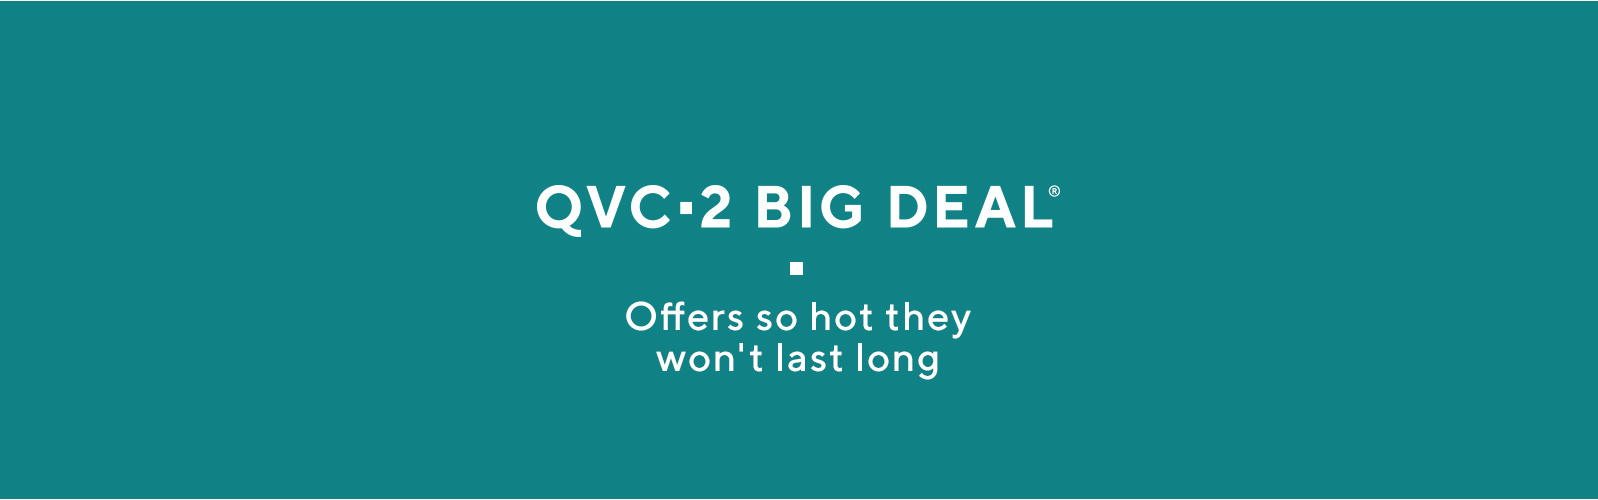 QVC2 Big Deal — QVC com